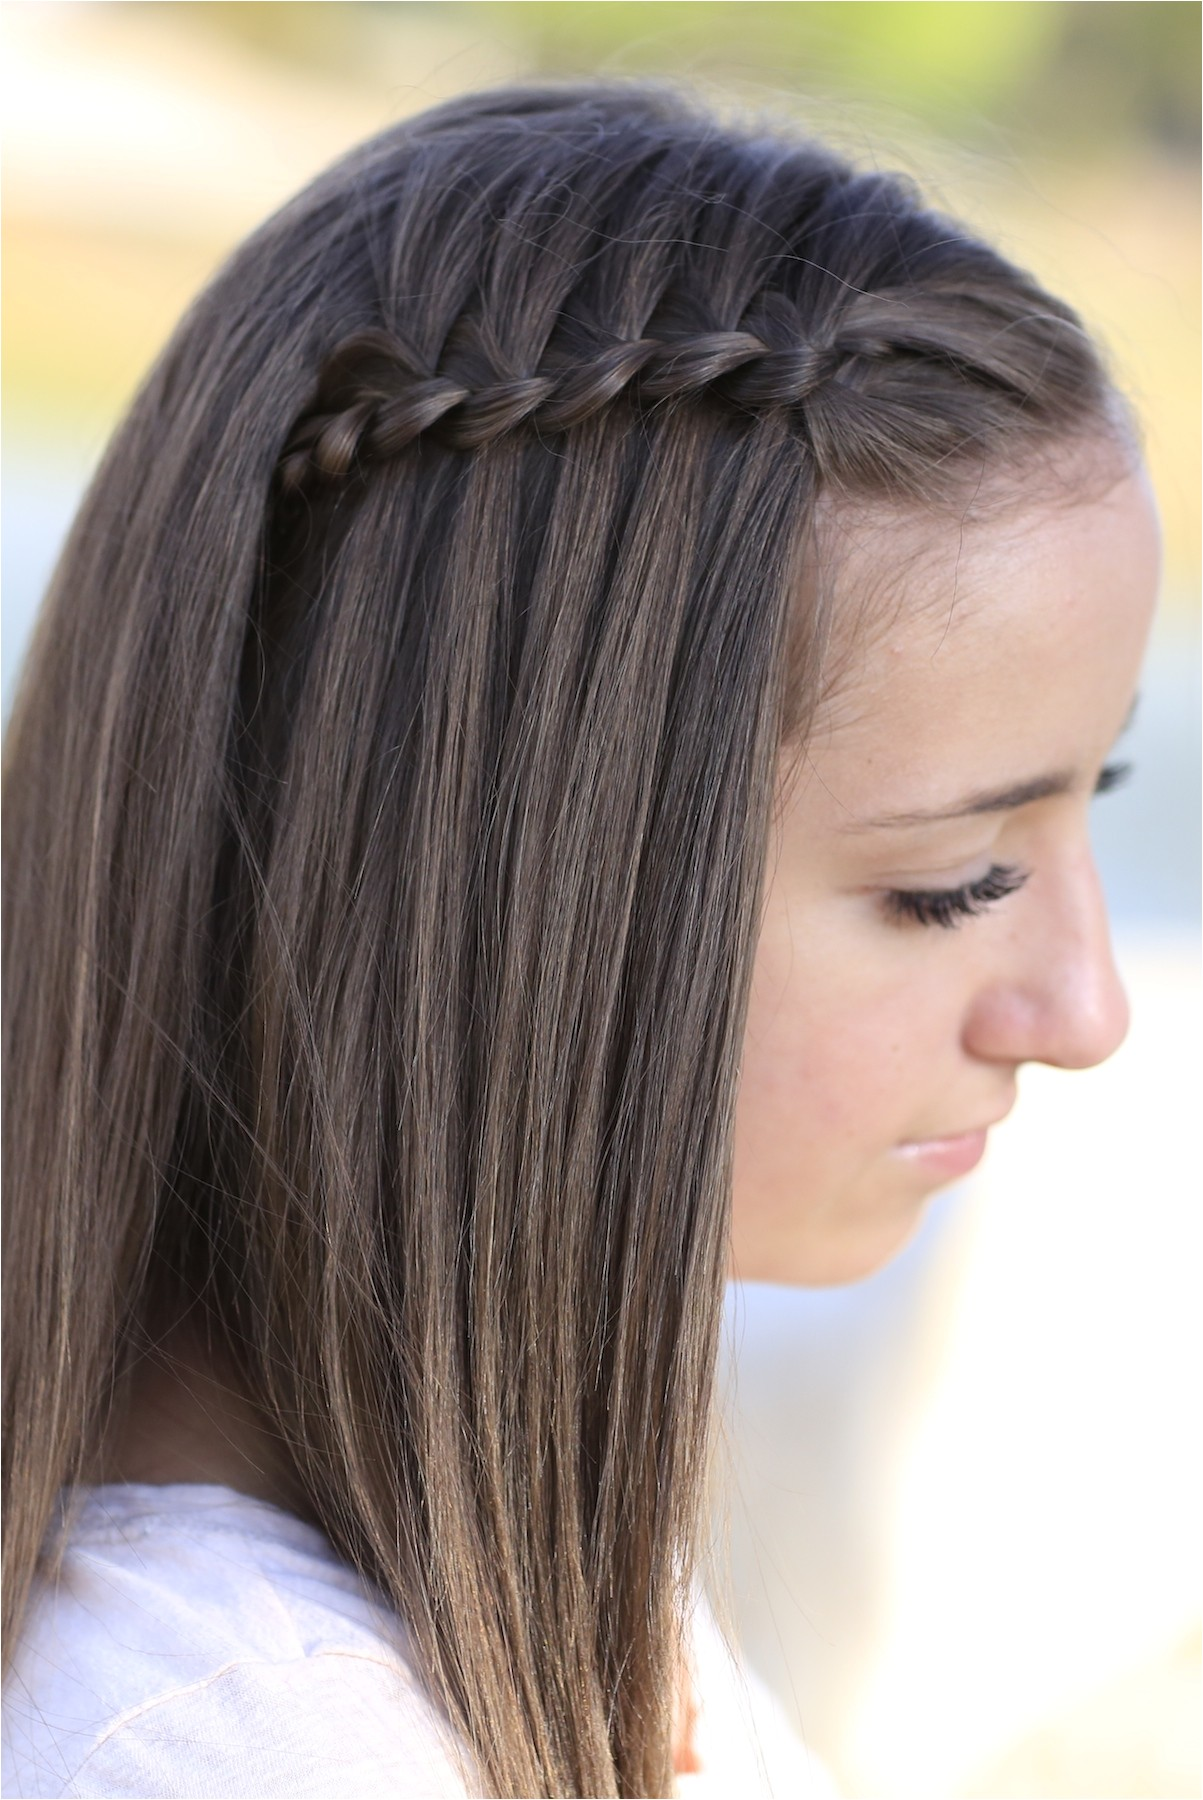 Cute Easy Hairstyles for 4 Year Olds Cute Hairstyles for 4 Year Olds